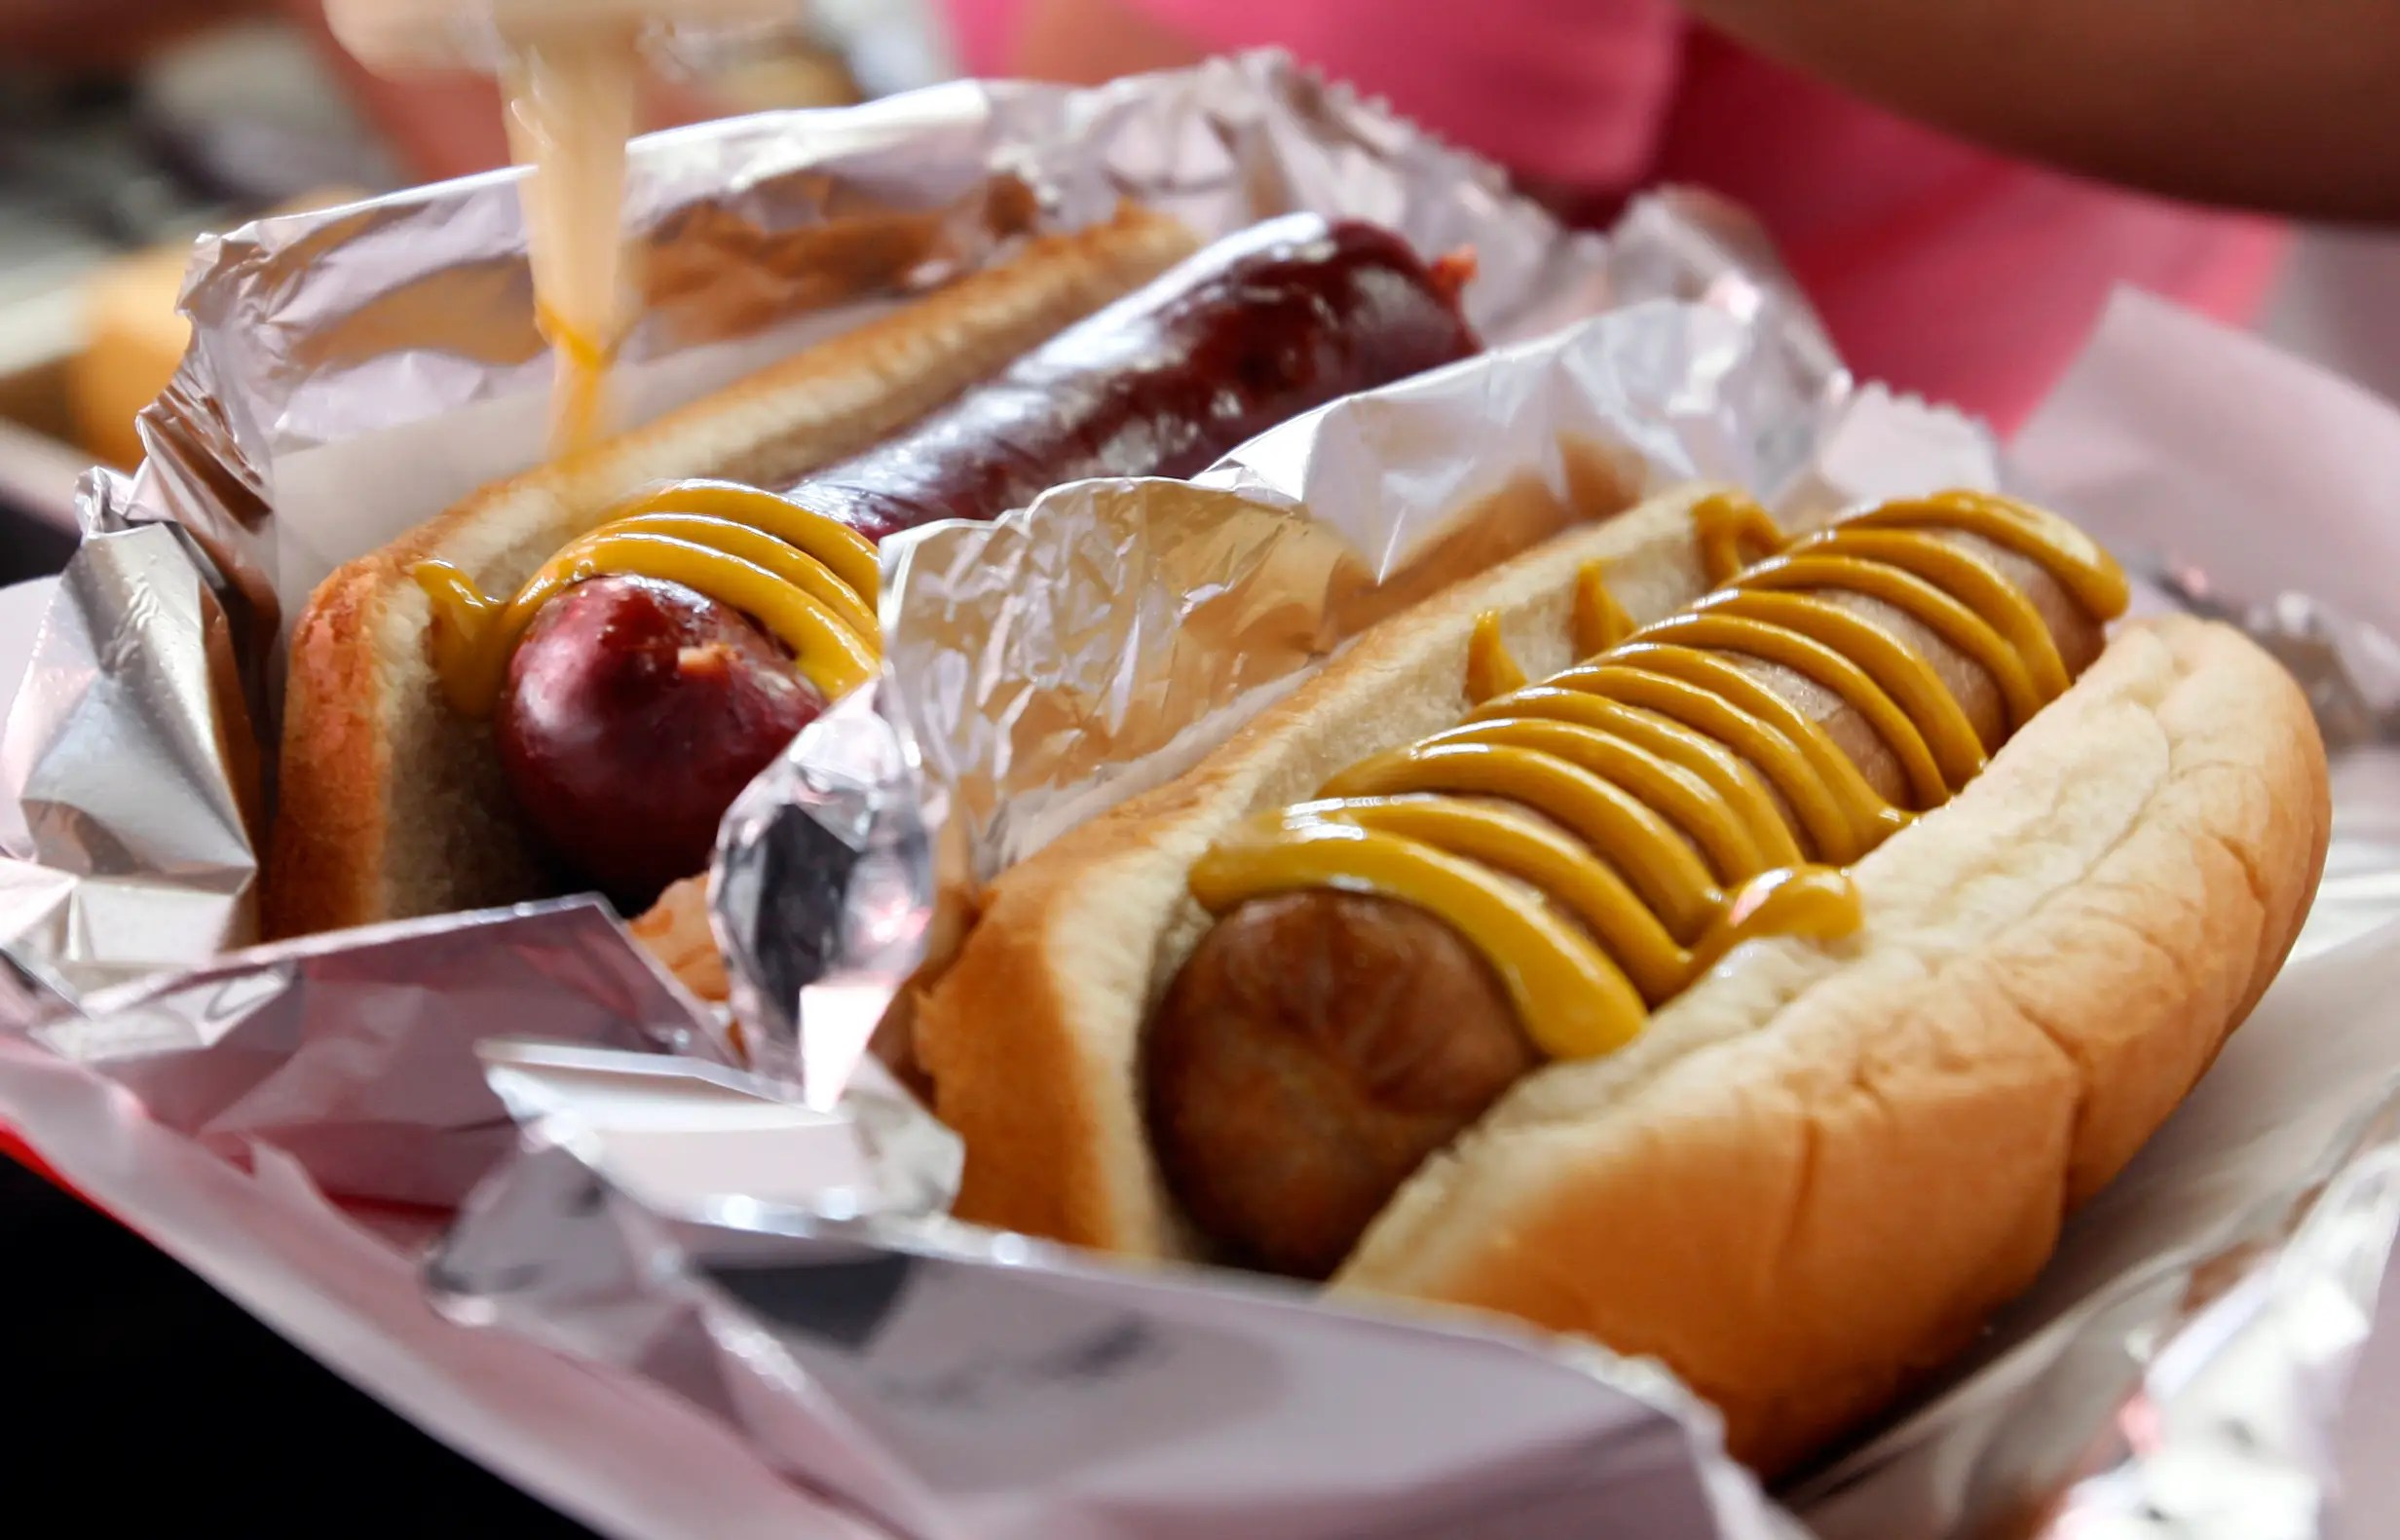 Some other things to watch out for: Hot dogs are the